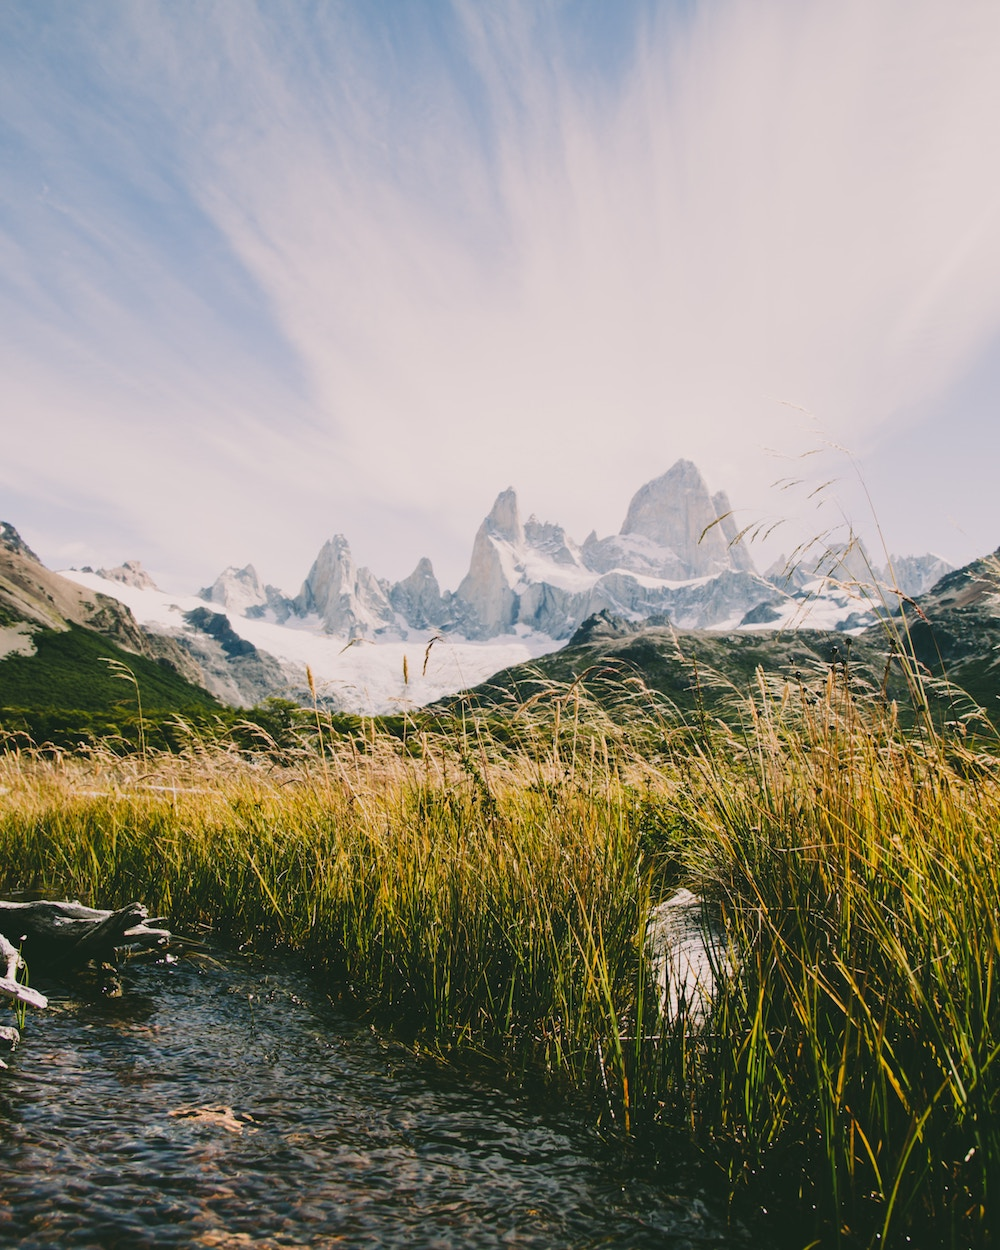 Plan South America | Mount Fitz Roy, Argentina